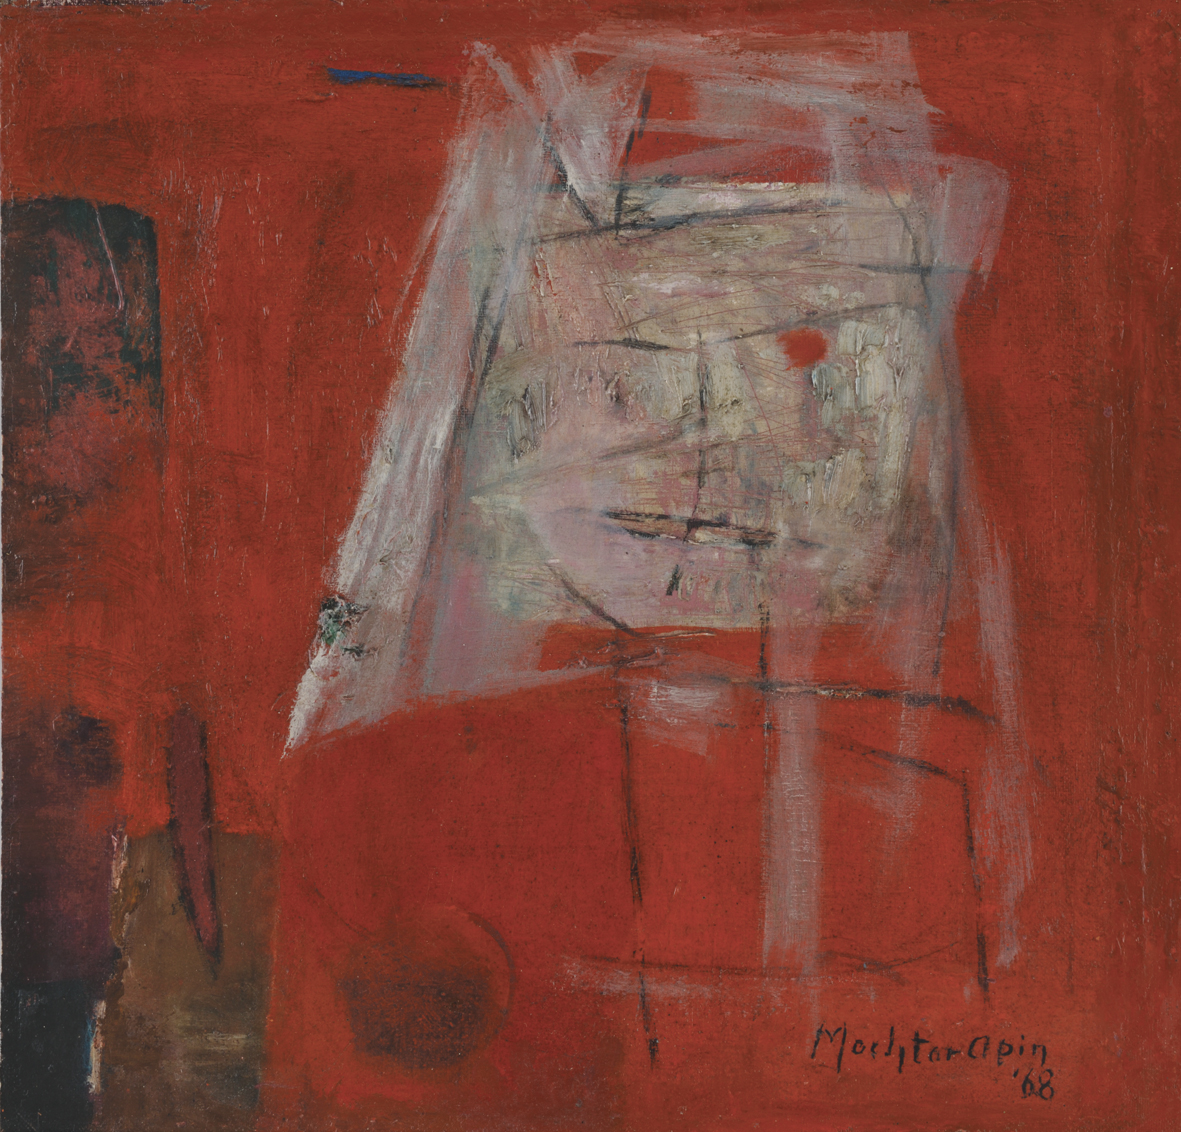 Mochtar Apin, Abstract Face, oil on canvas, 33 x 33 cm, 1968